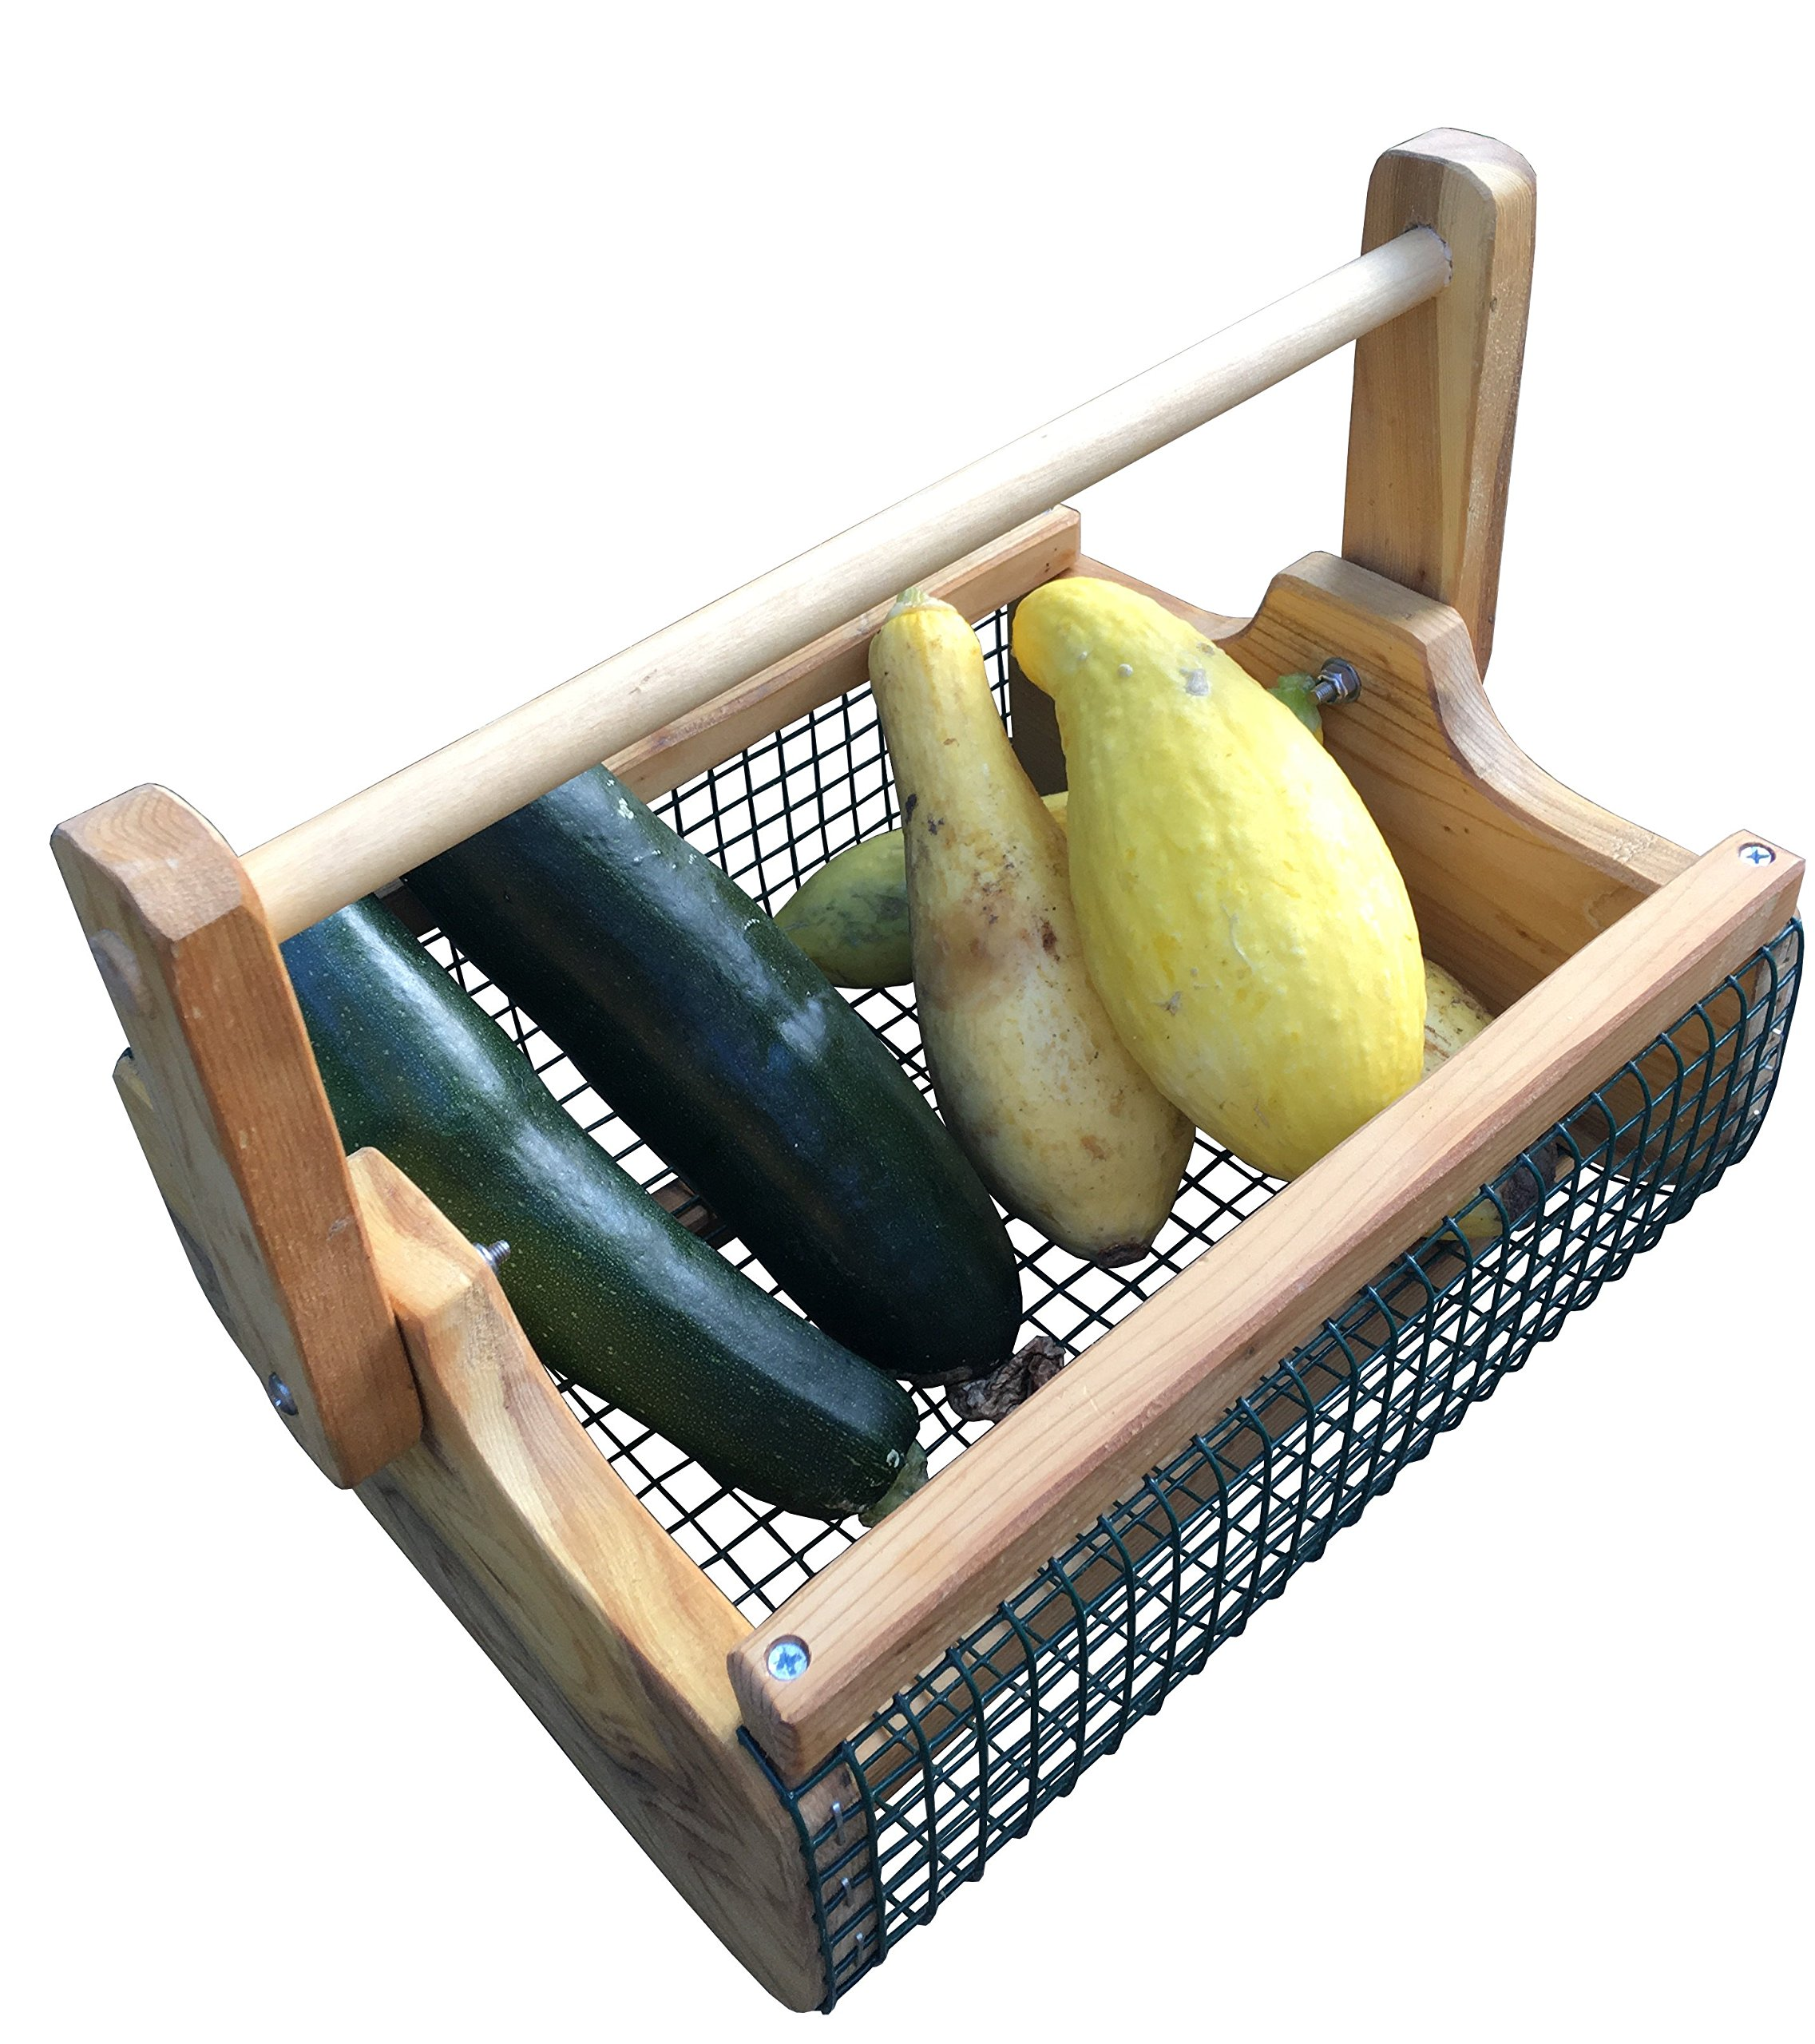 Fairfield Garden Products Large Harvest Fruit Basket | Rust Proof Wire Mesh With Folding Handle | Cedar Garden Hod To Carry & Rinse Fresh Vegetables, As Picnic Basket, Magazine Or Towel Holder by Fairfield Garden Products